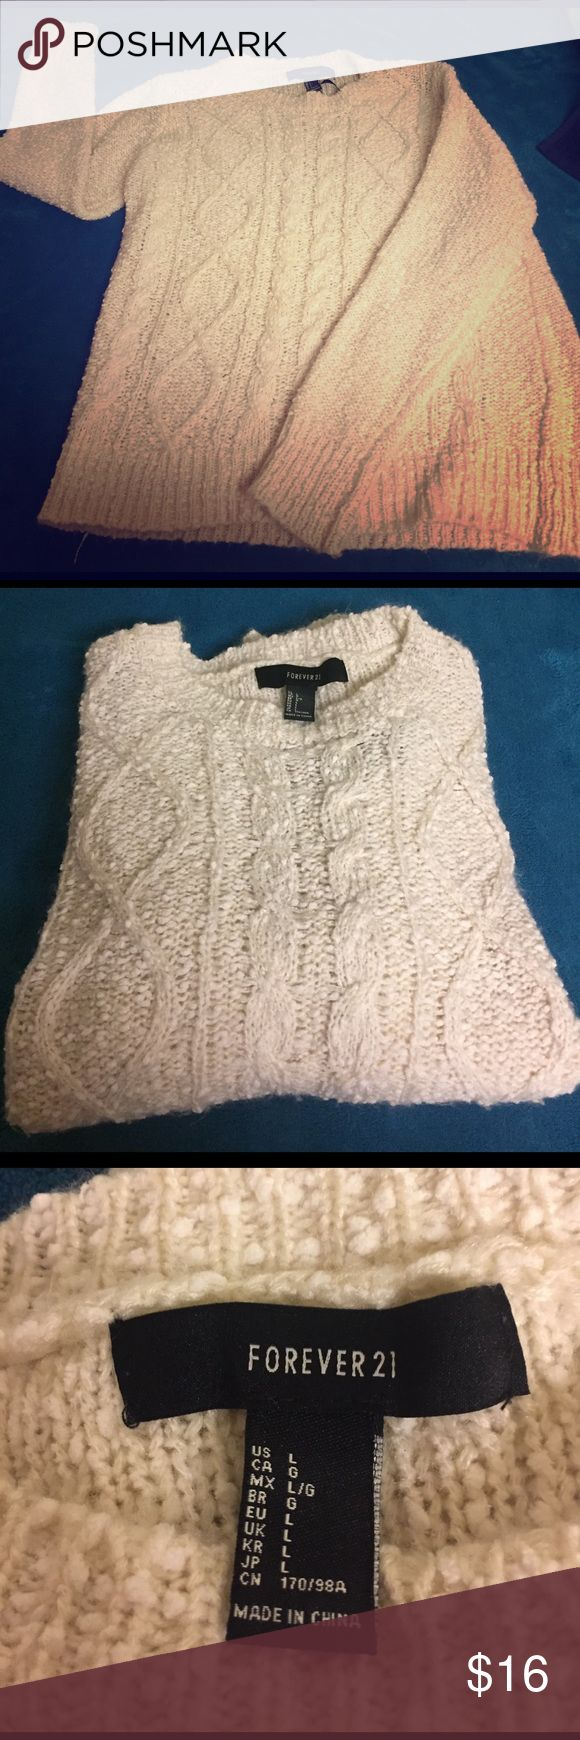 Cable knit Irish sweater Comfy Irish-style sweater. Paired with a cami underneath, this sweater is a super cute fall and winter look. Runs a bit small, sized large but fits like a medium. Prices as always are negotiable, offers and trades accepted. Forever 21 Tops Blouses